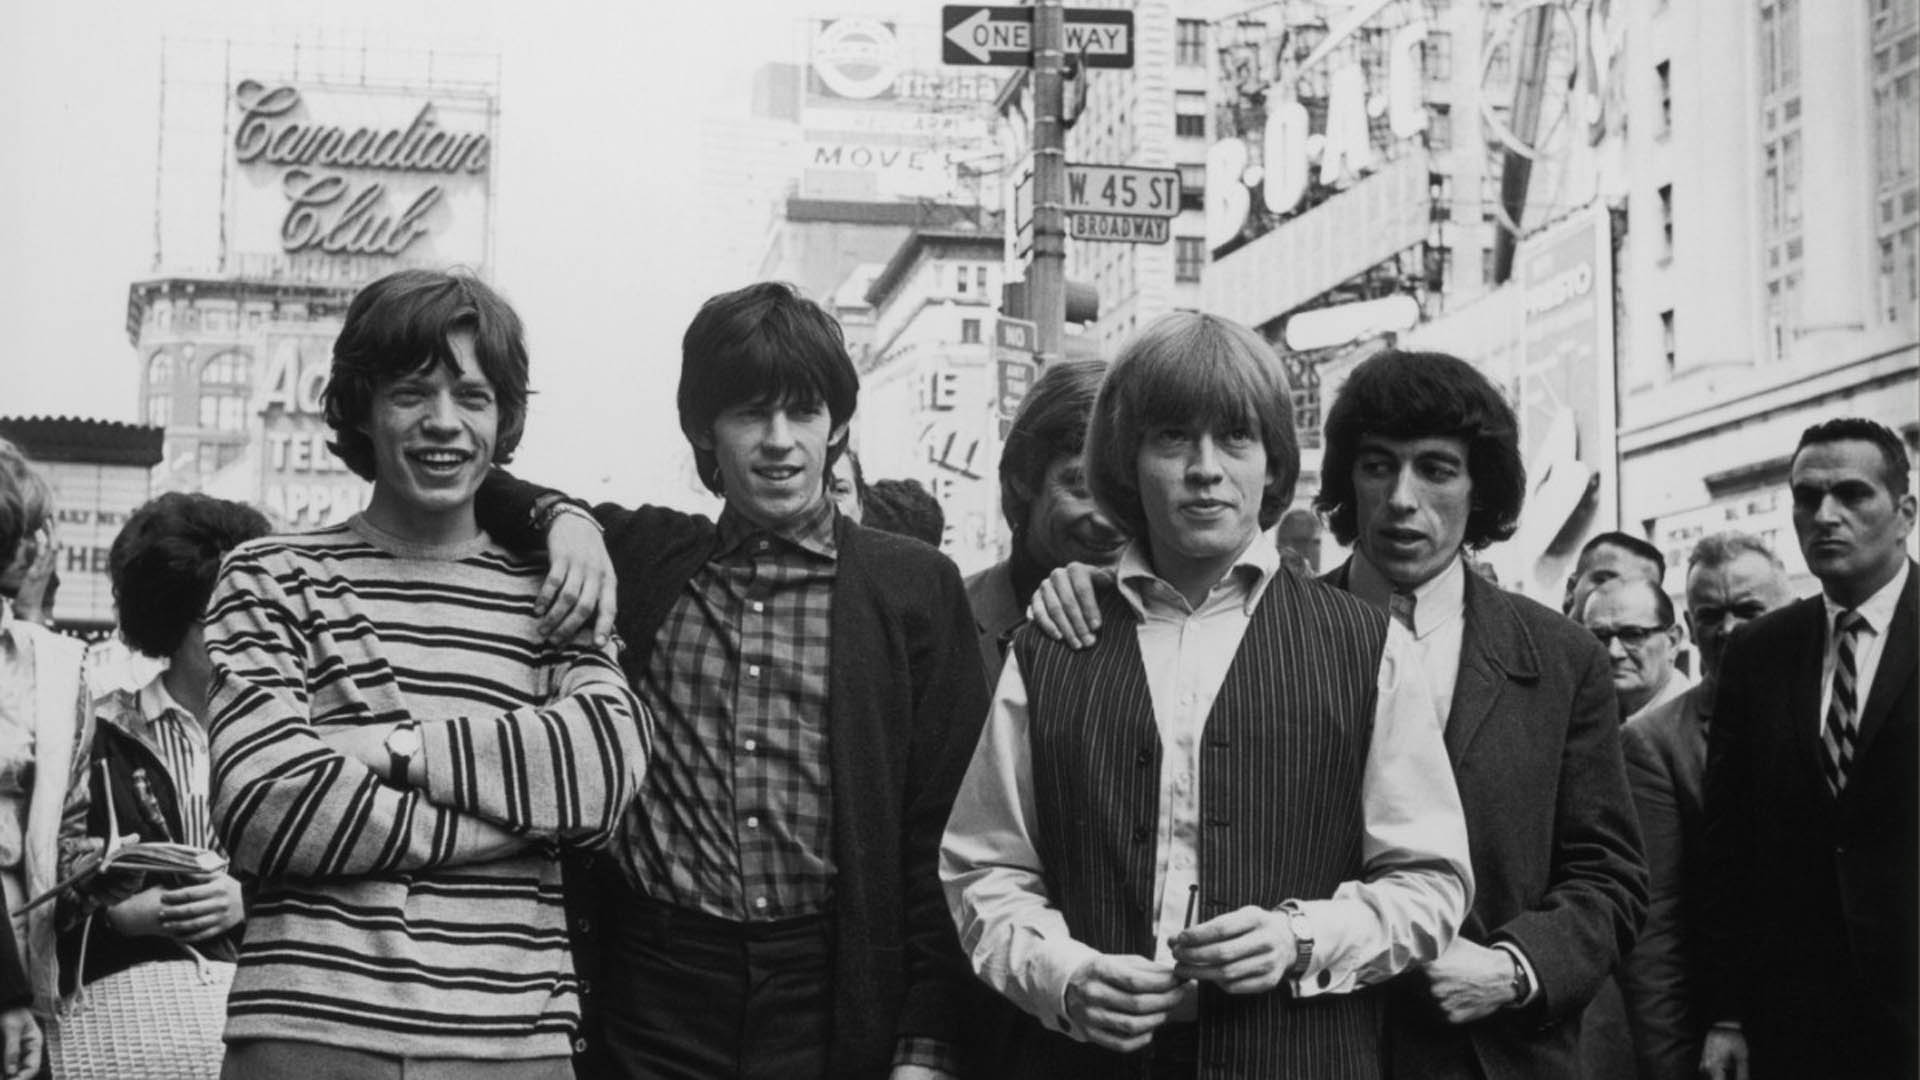 You Can't Always Get What You Want av The Rolling Stones